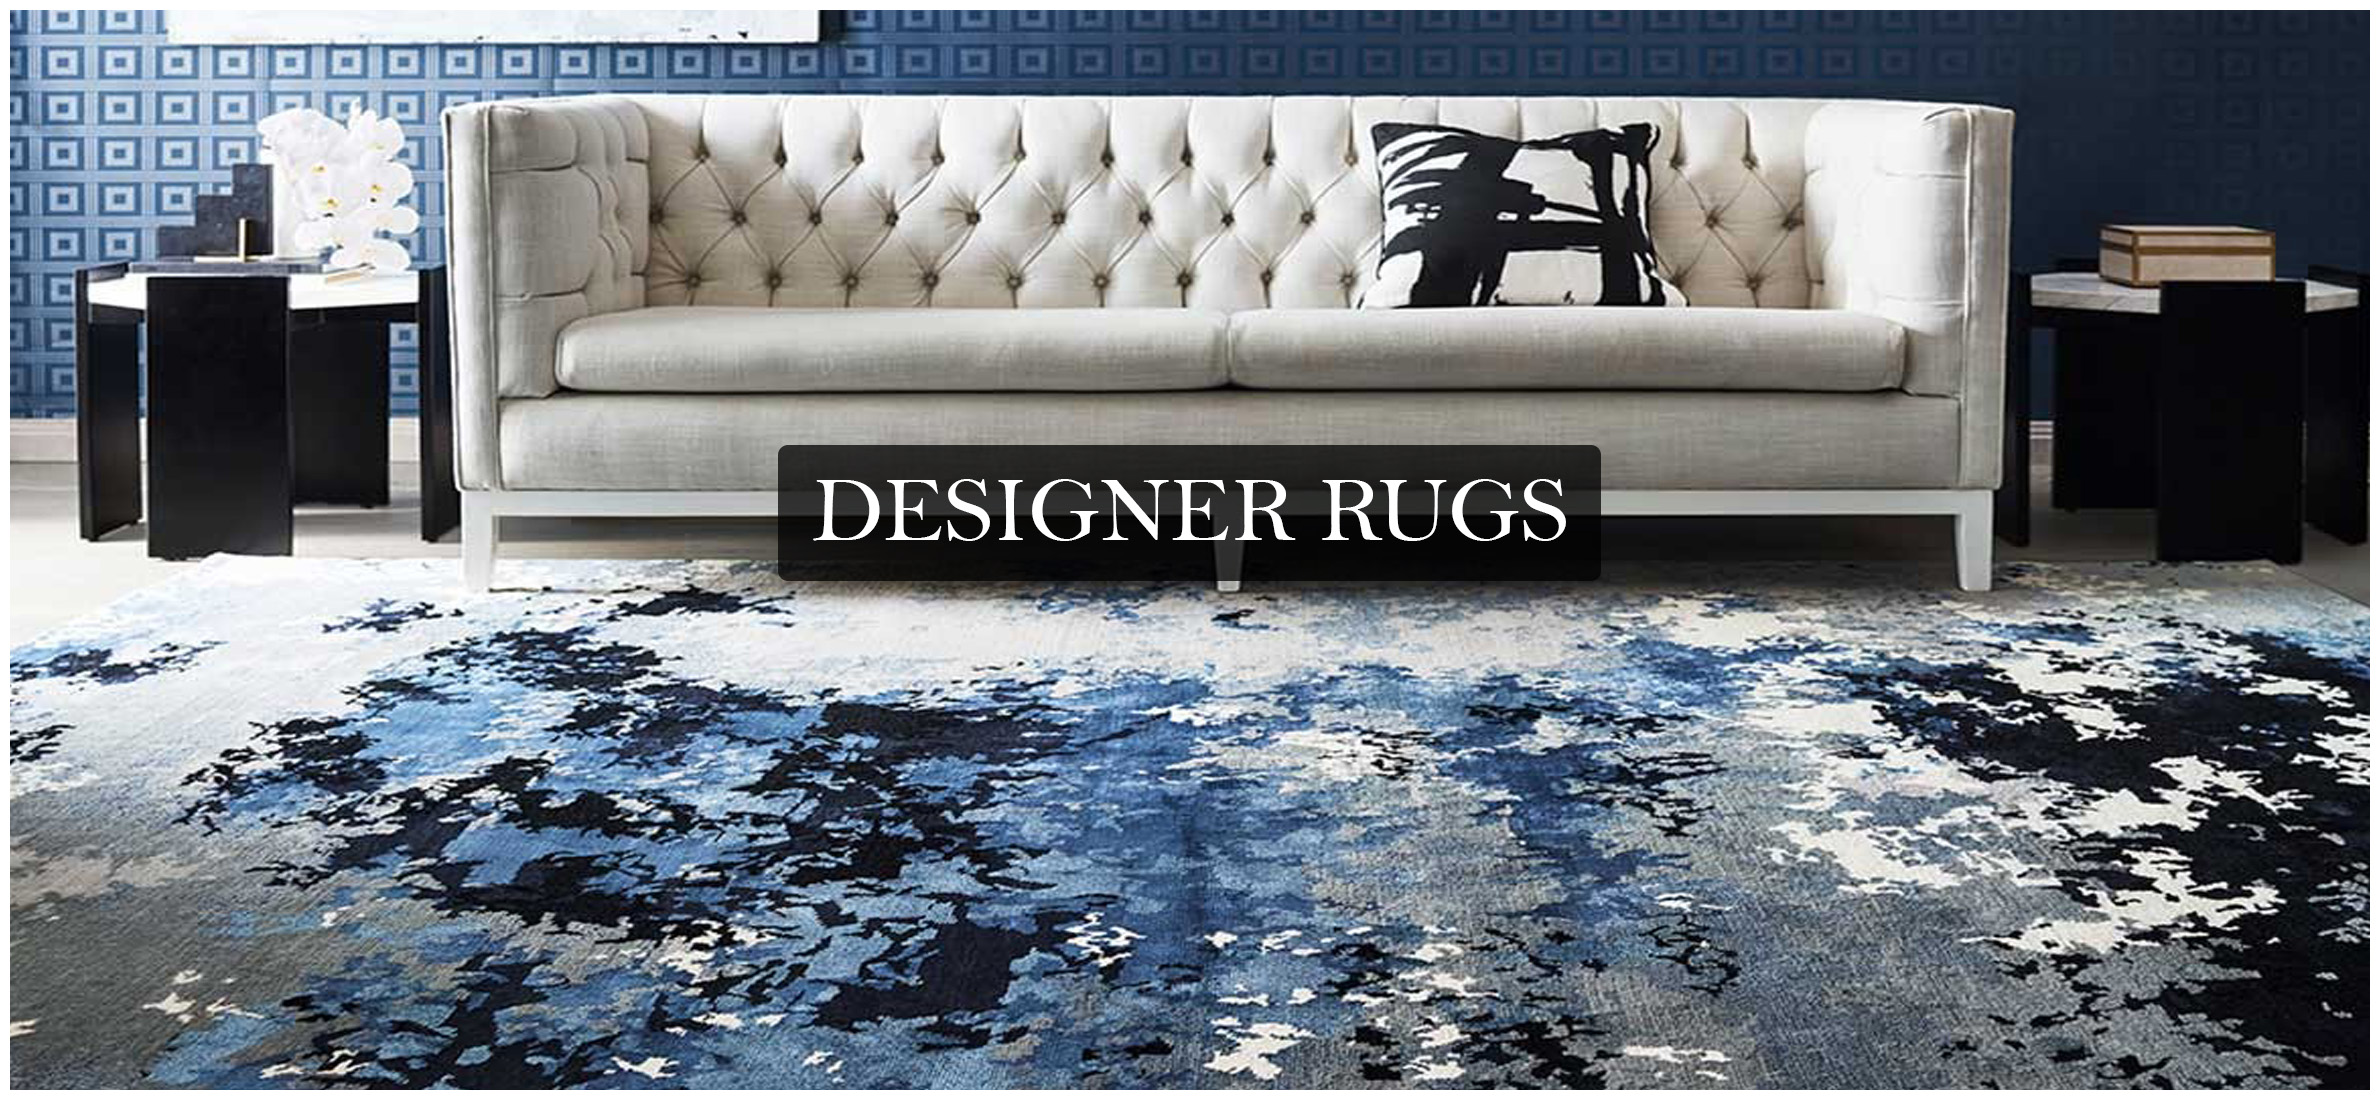 Online Rugs Designer Rugs Online For Sale Benefits Oz Rugs